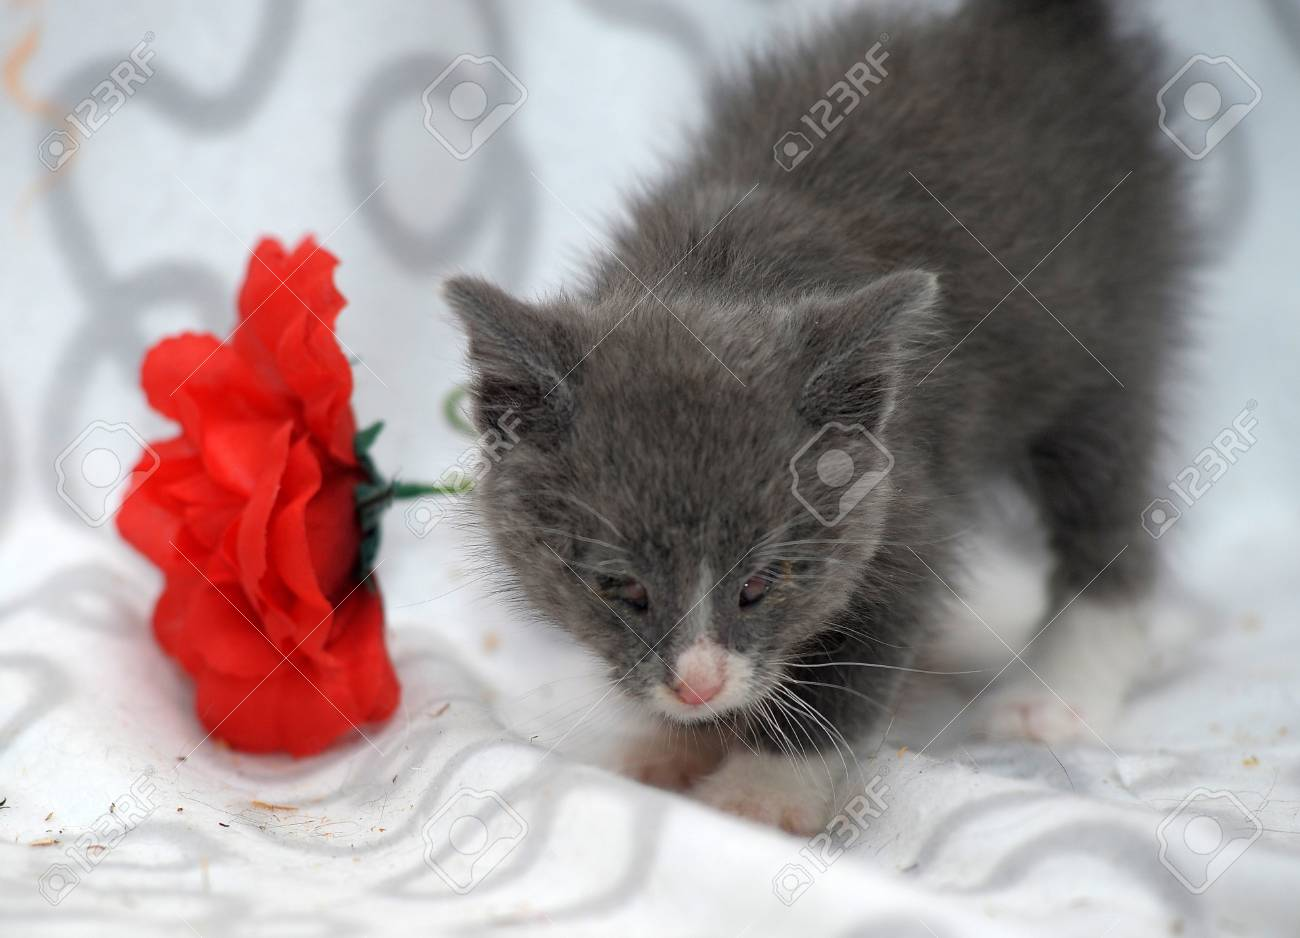 small kitten with diseased eyes rescued zoo defenders Stock Photo - 19912293